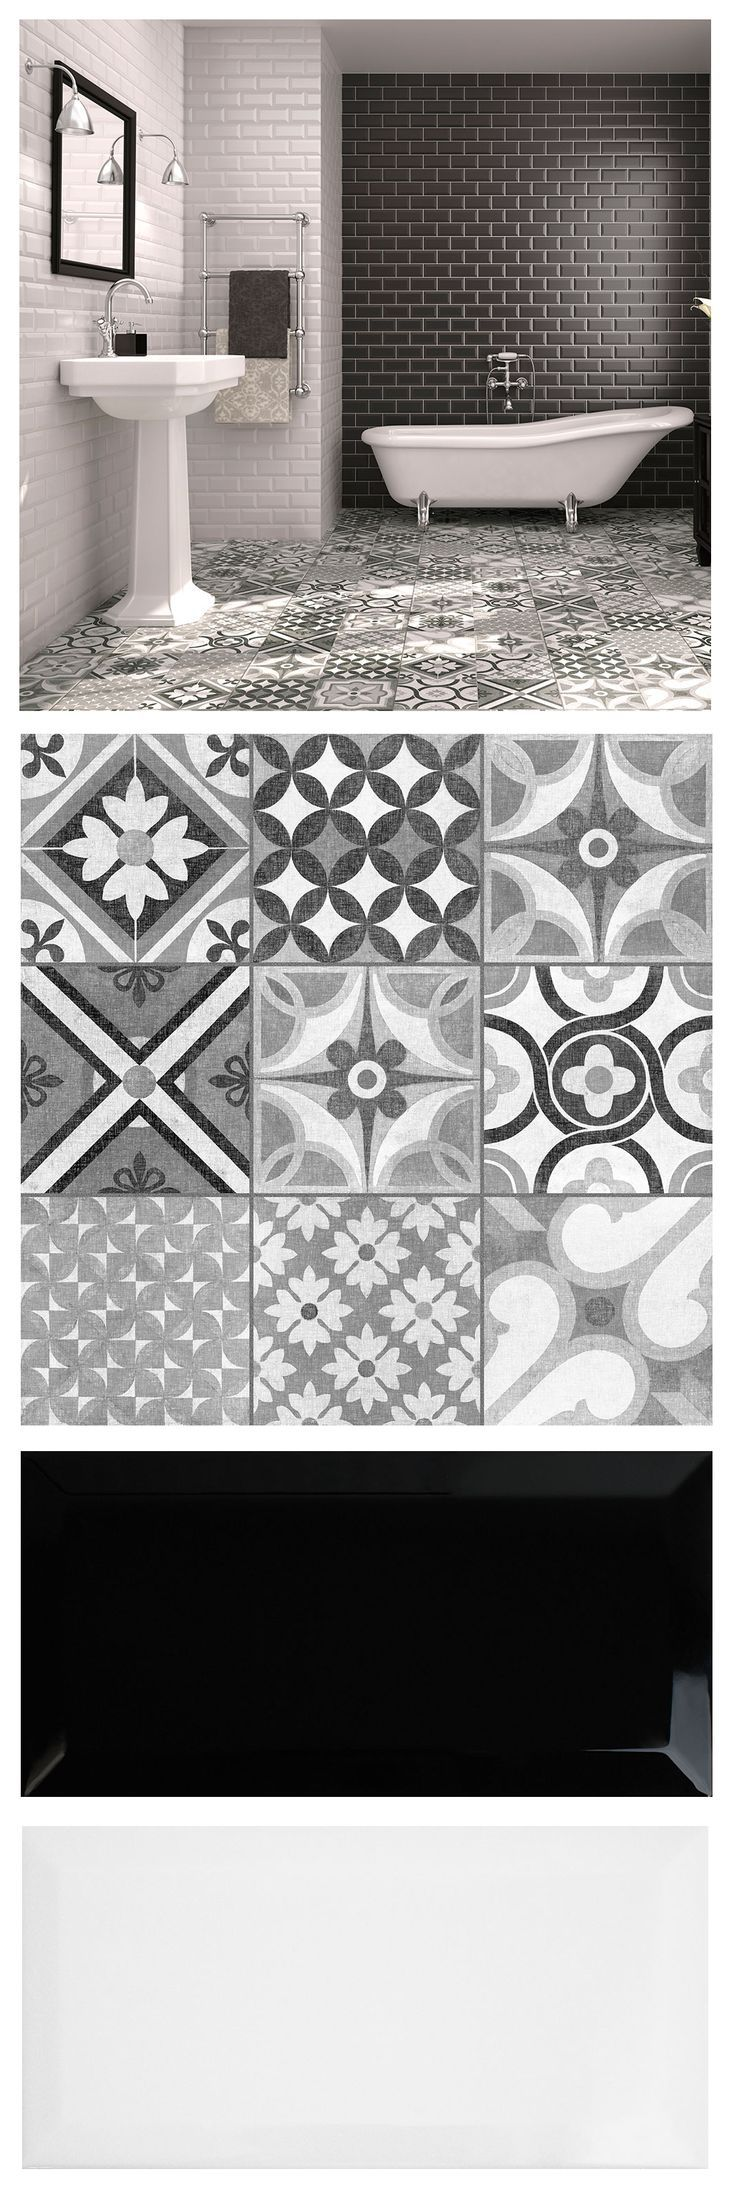 617 best floor tile ideas images on pinterest floors bathroom floor tiles mix brick shaped metros and patterned zeinah tiles for a striking monochrome moroccan mash up in a bathroom or kitchen dailygadgetfo Images